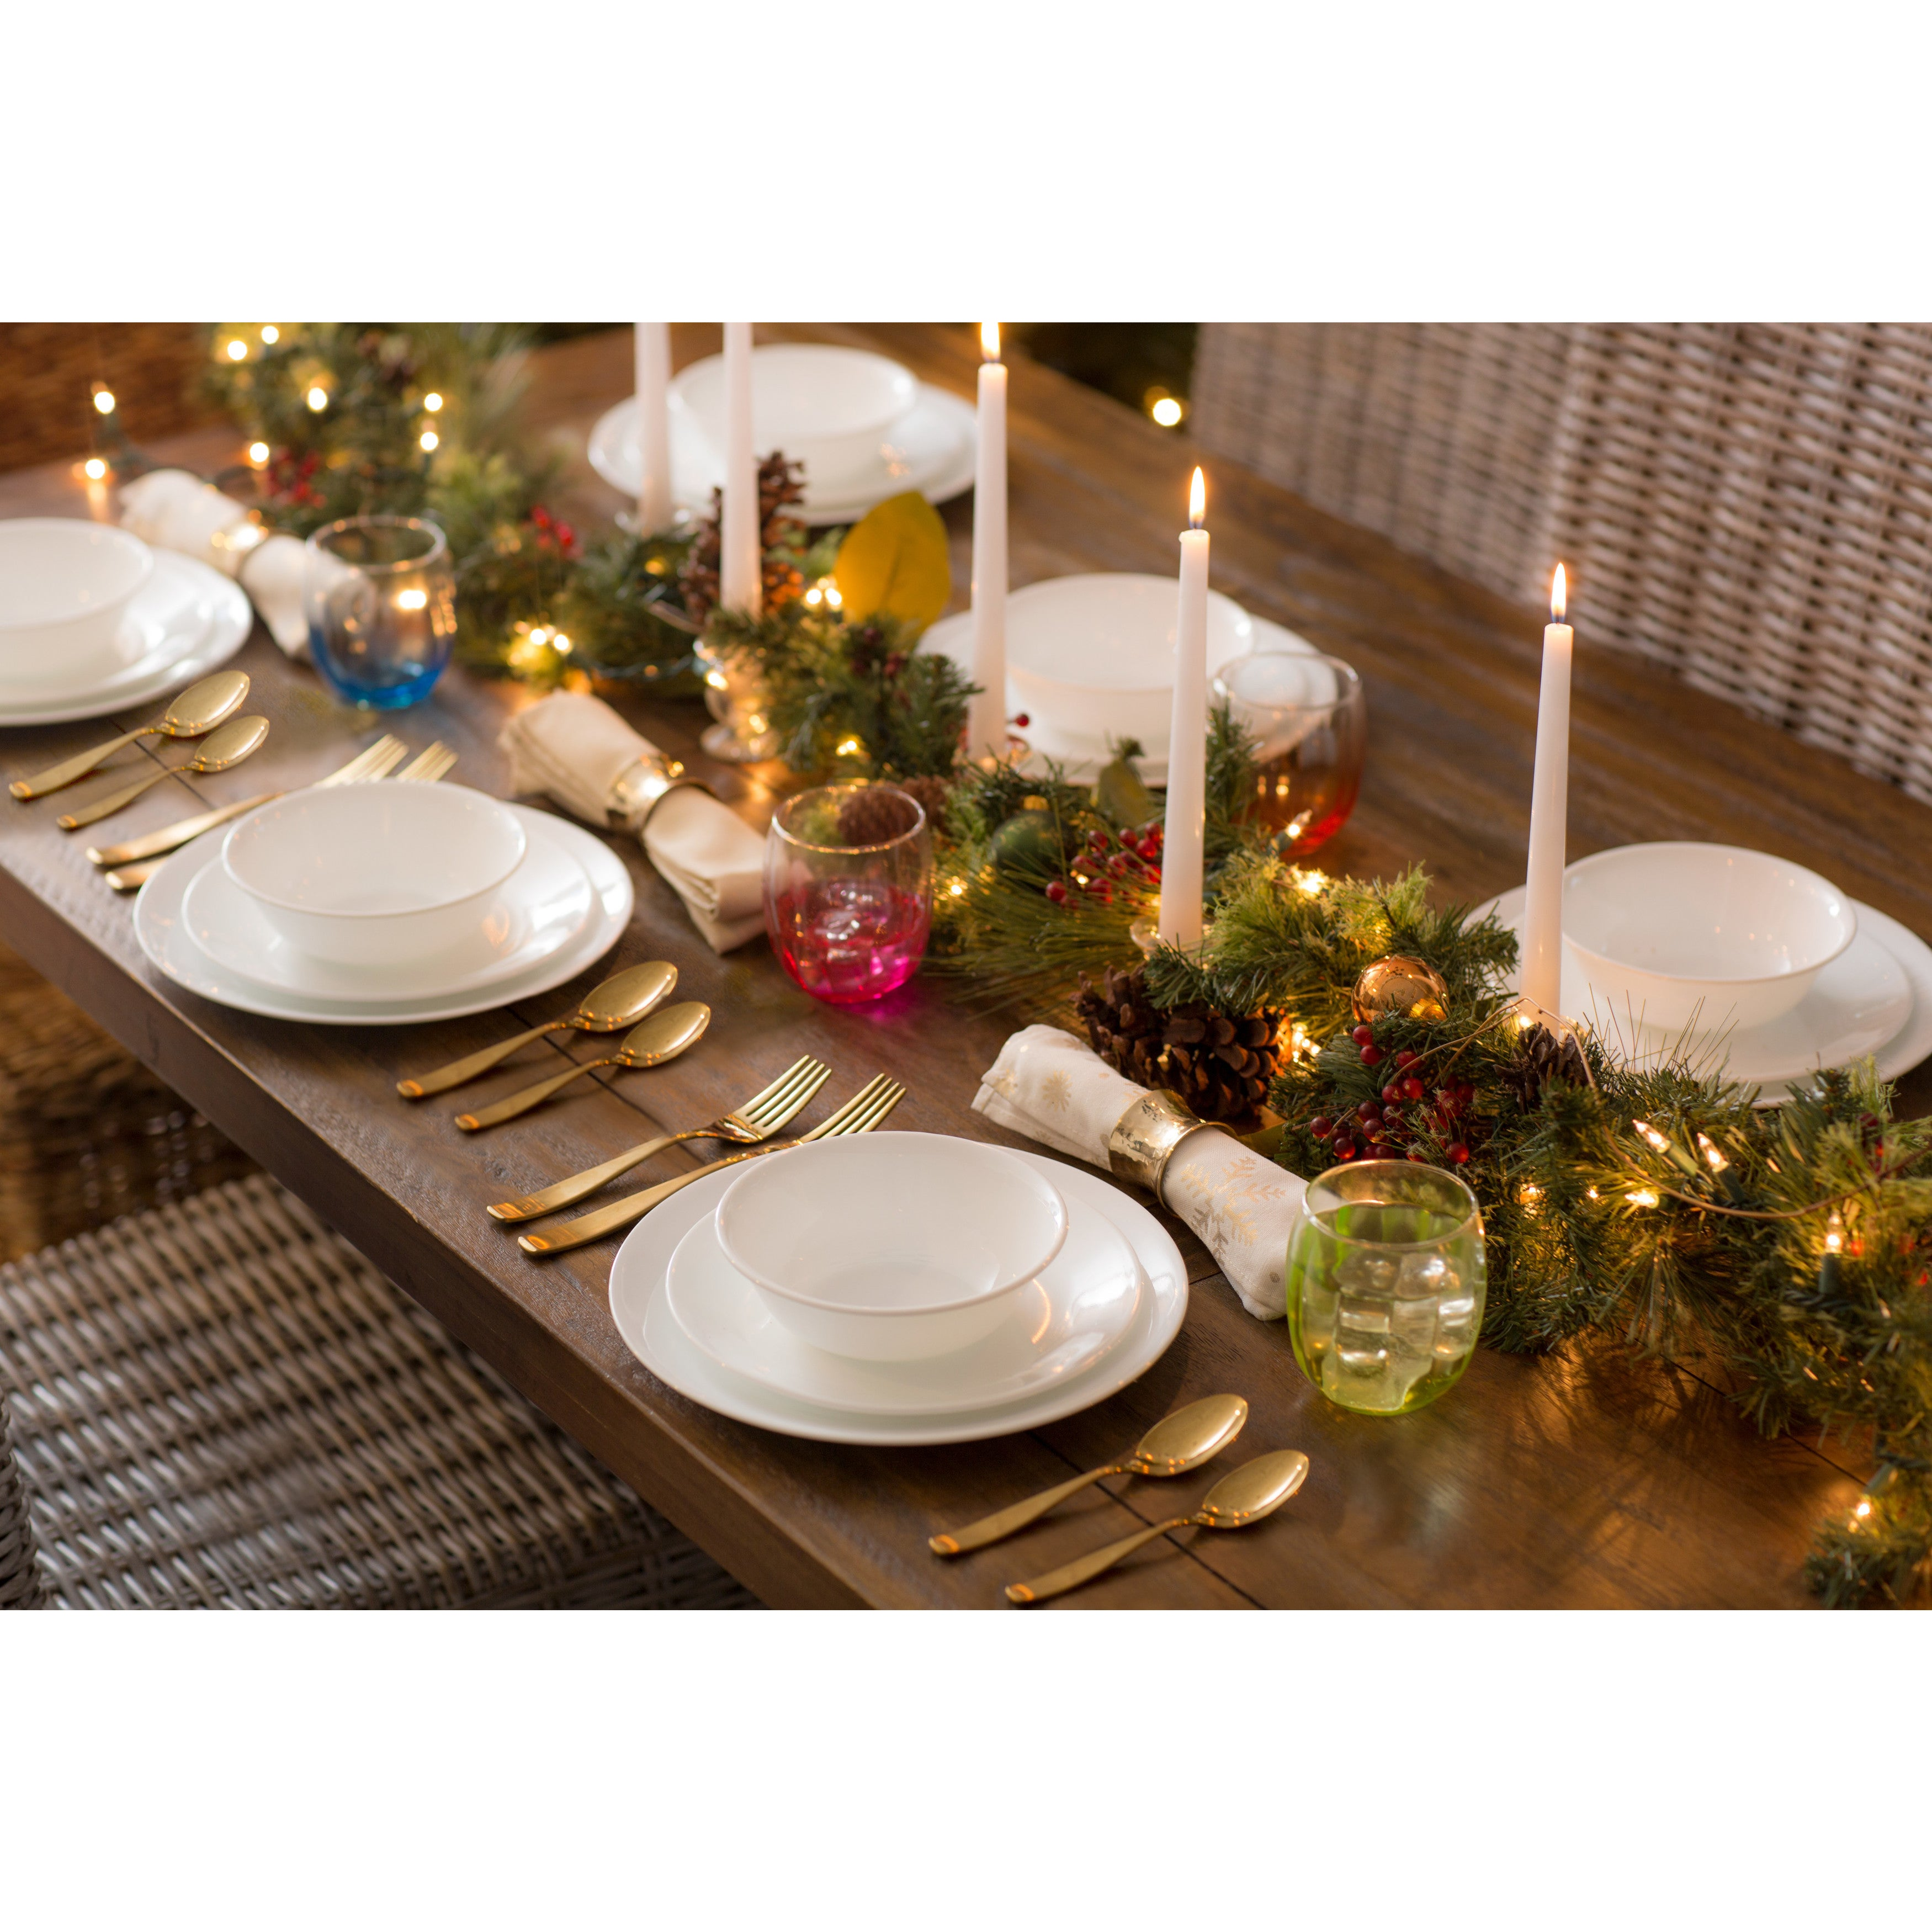 Shop Corelle Livingware Winter Frost White Dinner Plate (Set of 6) - Free Shipping On Orders Over $45 - Overstock.com - 11716462  sc 1 st  Overstock & Shop Corelle Livingware Winter Frost White Dinner Plate (Set of 6 ...